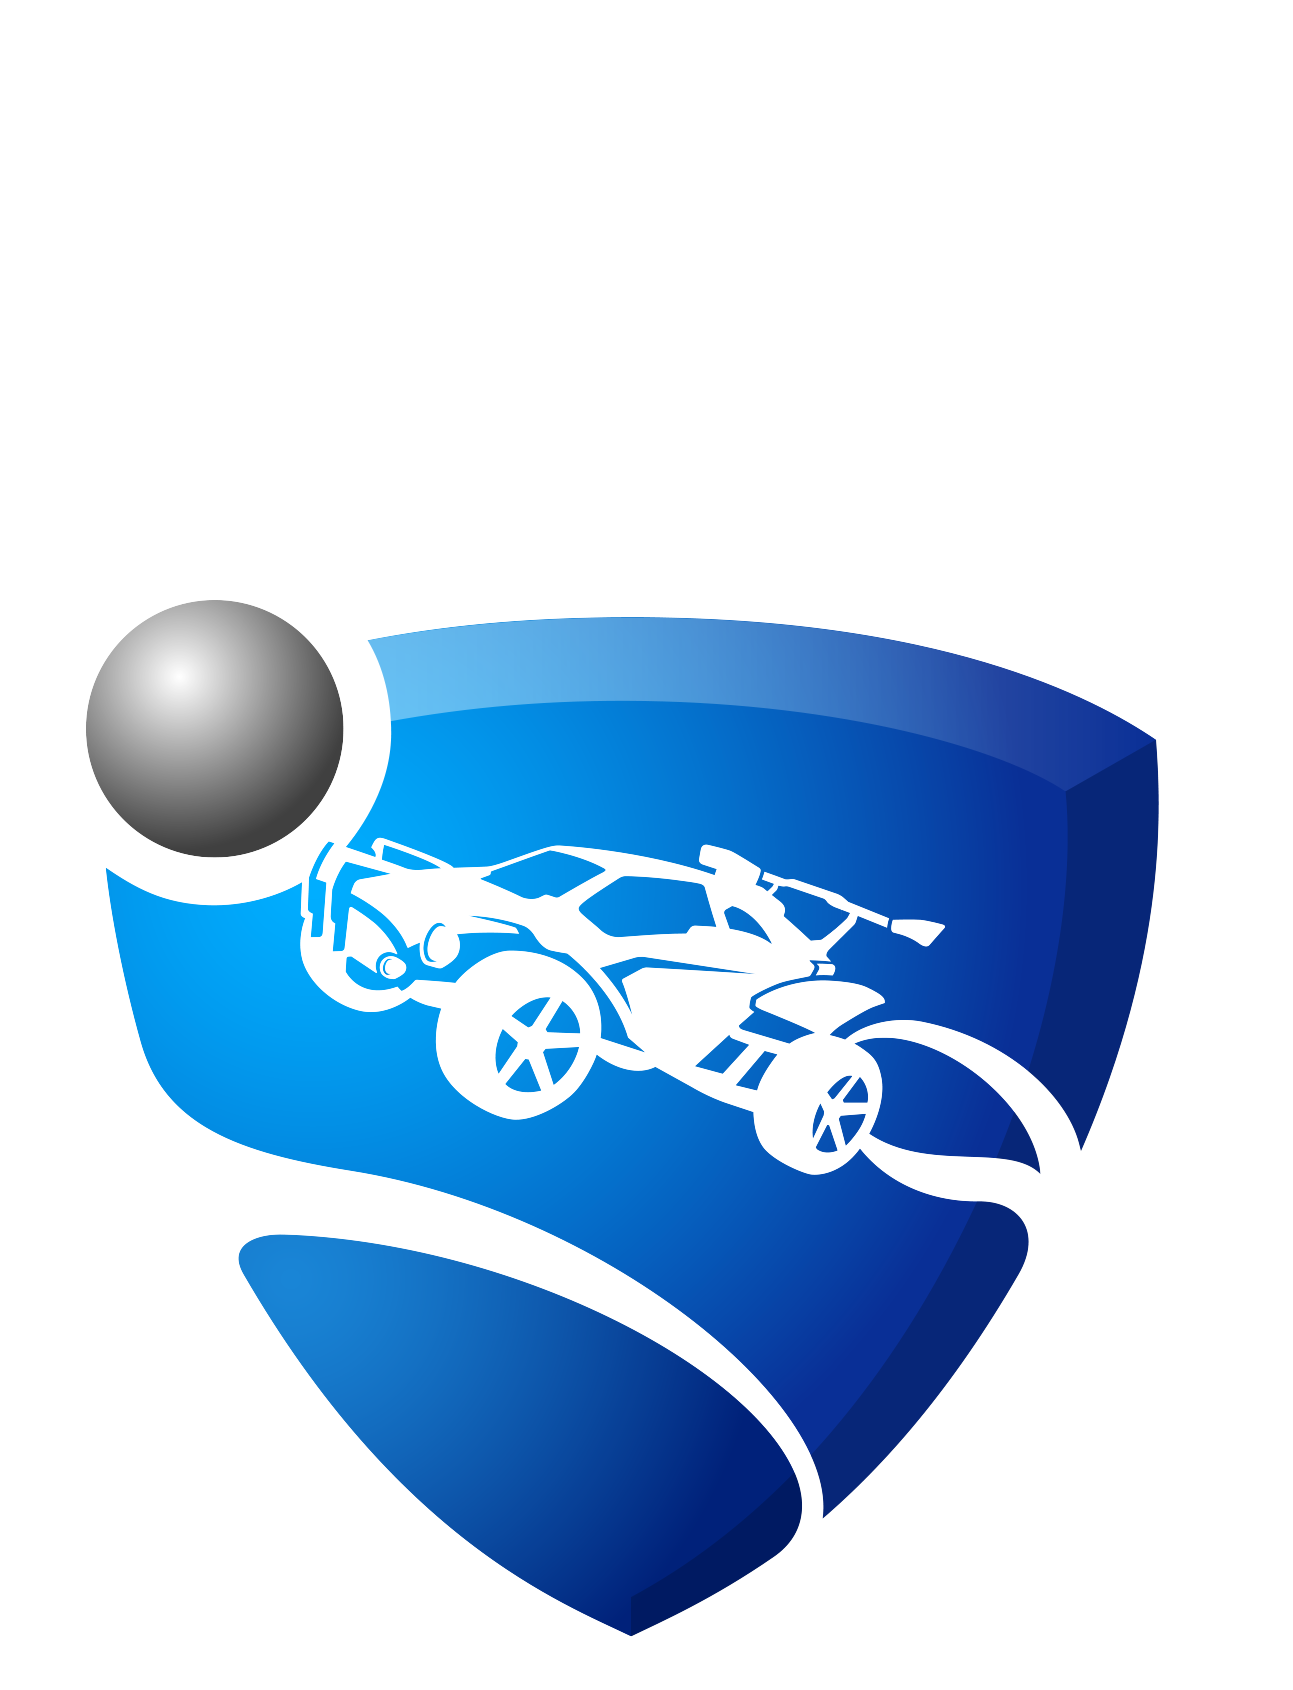 Play Rocket League® | Rocket League® - Official Site